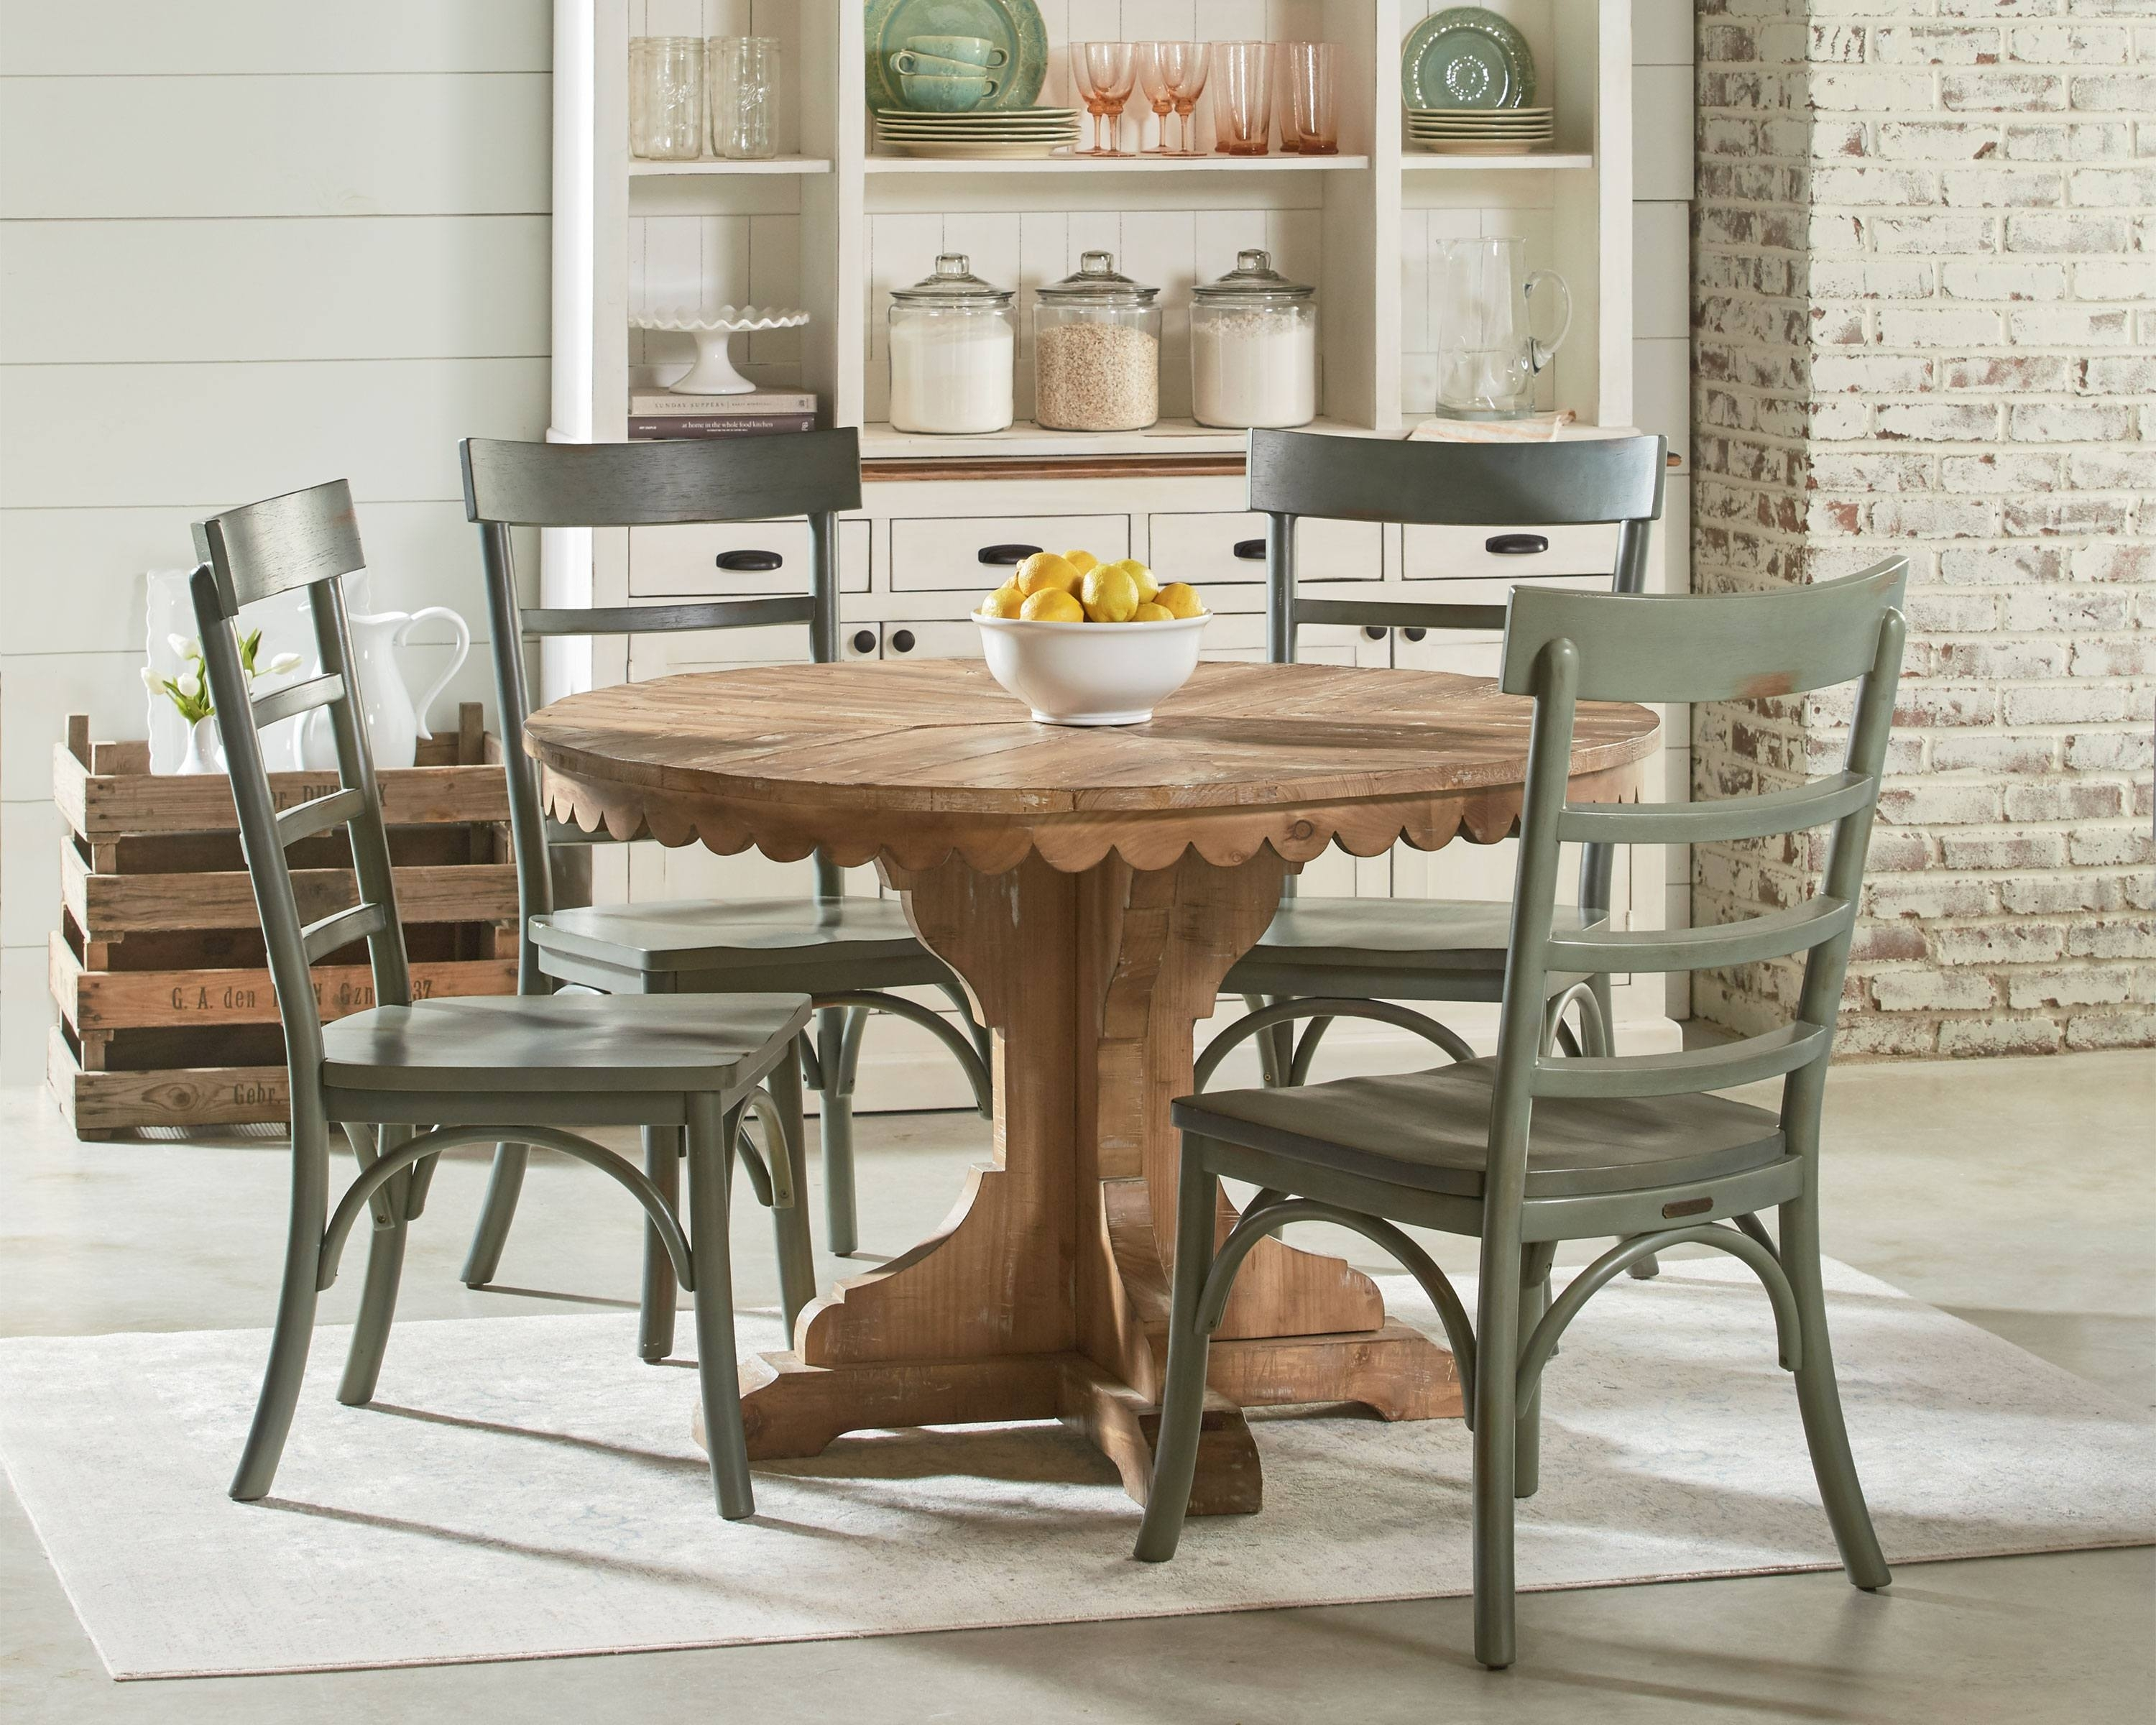 Top Tier + Harper – Magnolia Home Intended For Best And Newest Magnolia Home Harper Patina Side Chairs (#20 of 20)